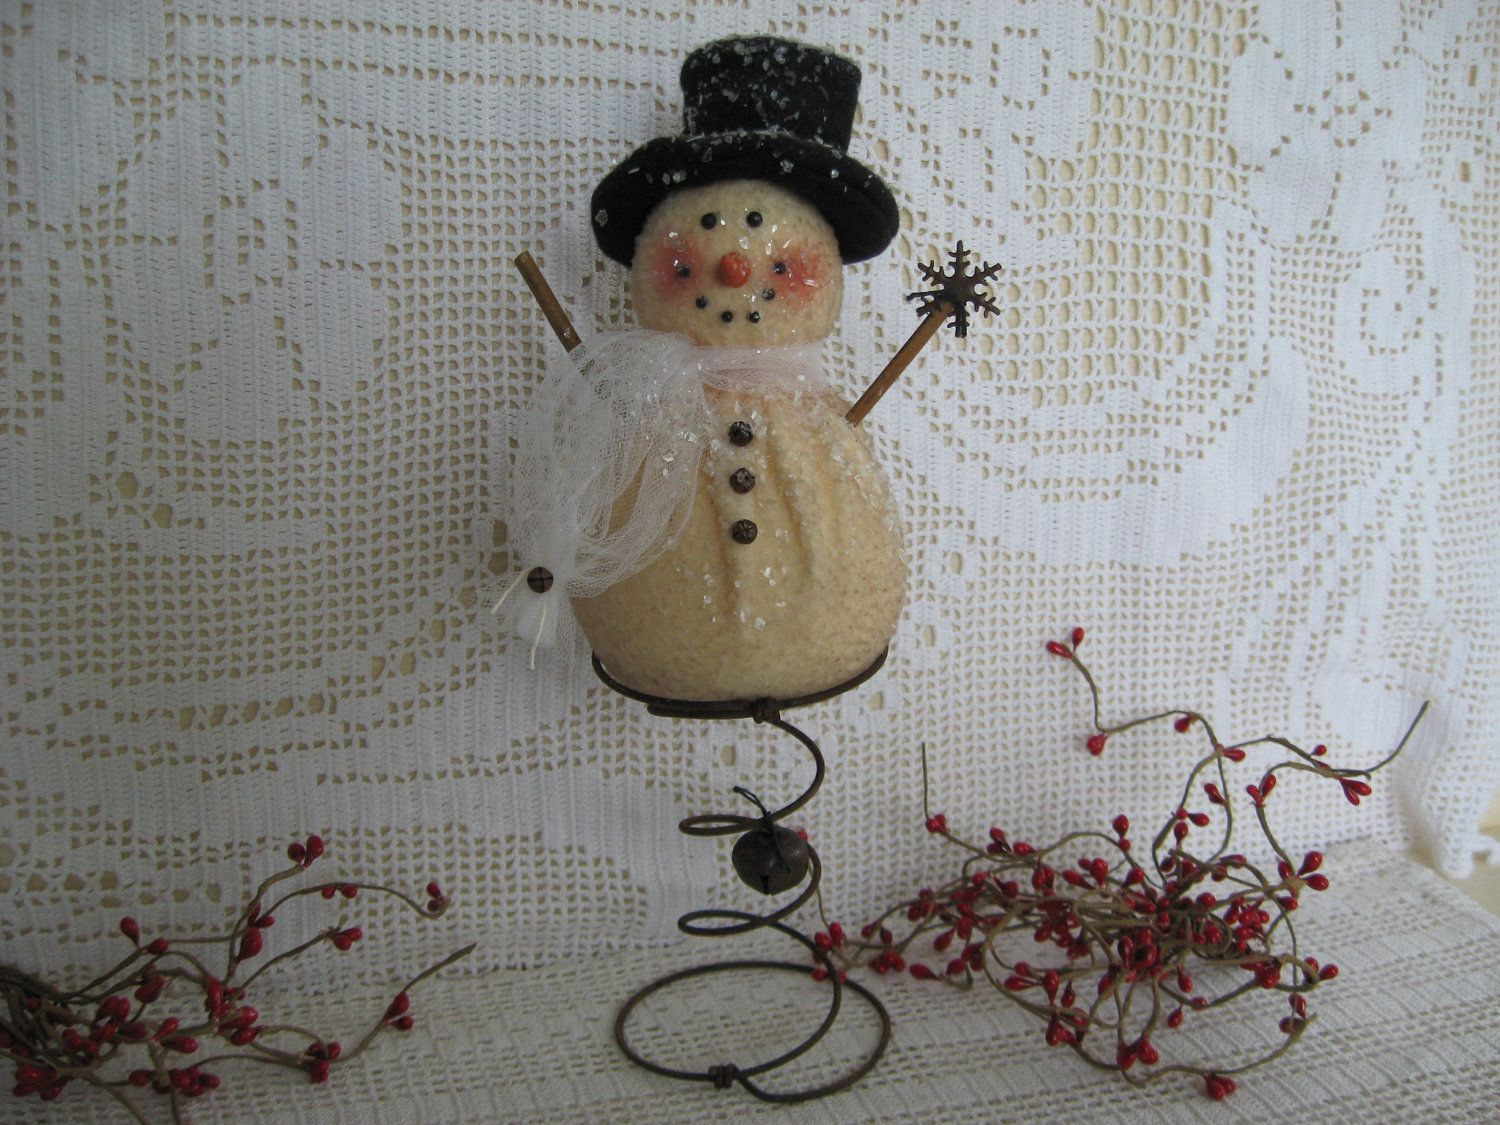 How to make a snowman christmas tree topper - Primitive Snowman Nodder On Rusty Spring Winter Snowman Make Do Snowman Tree Topper